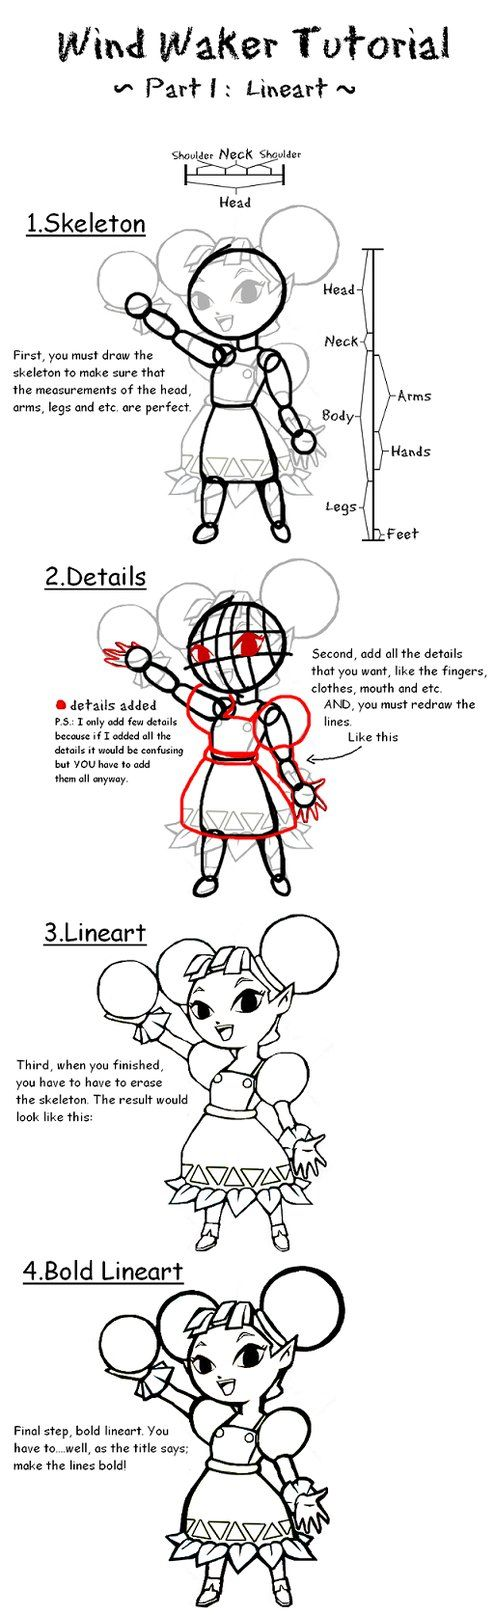 WW Tutorial - Part1 by Jokersita on deviantART